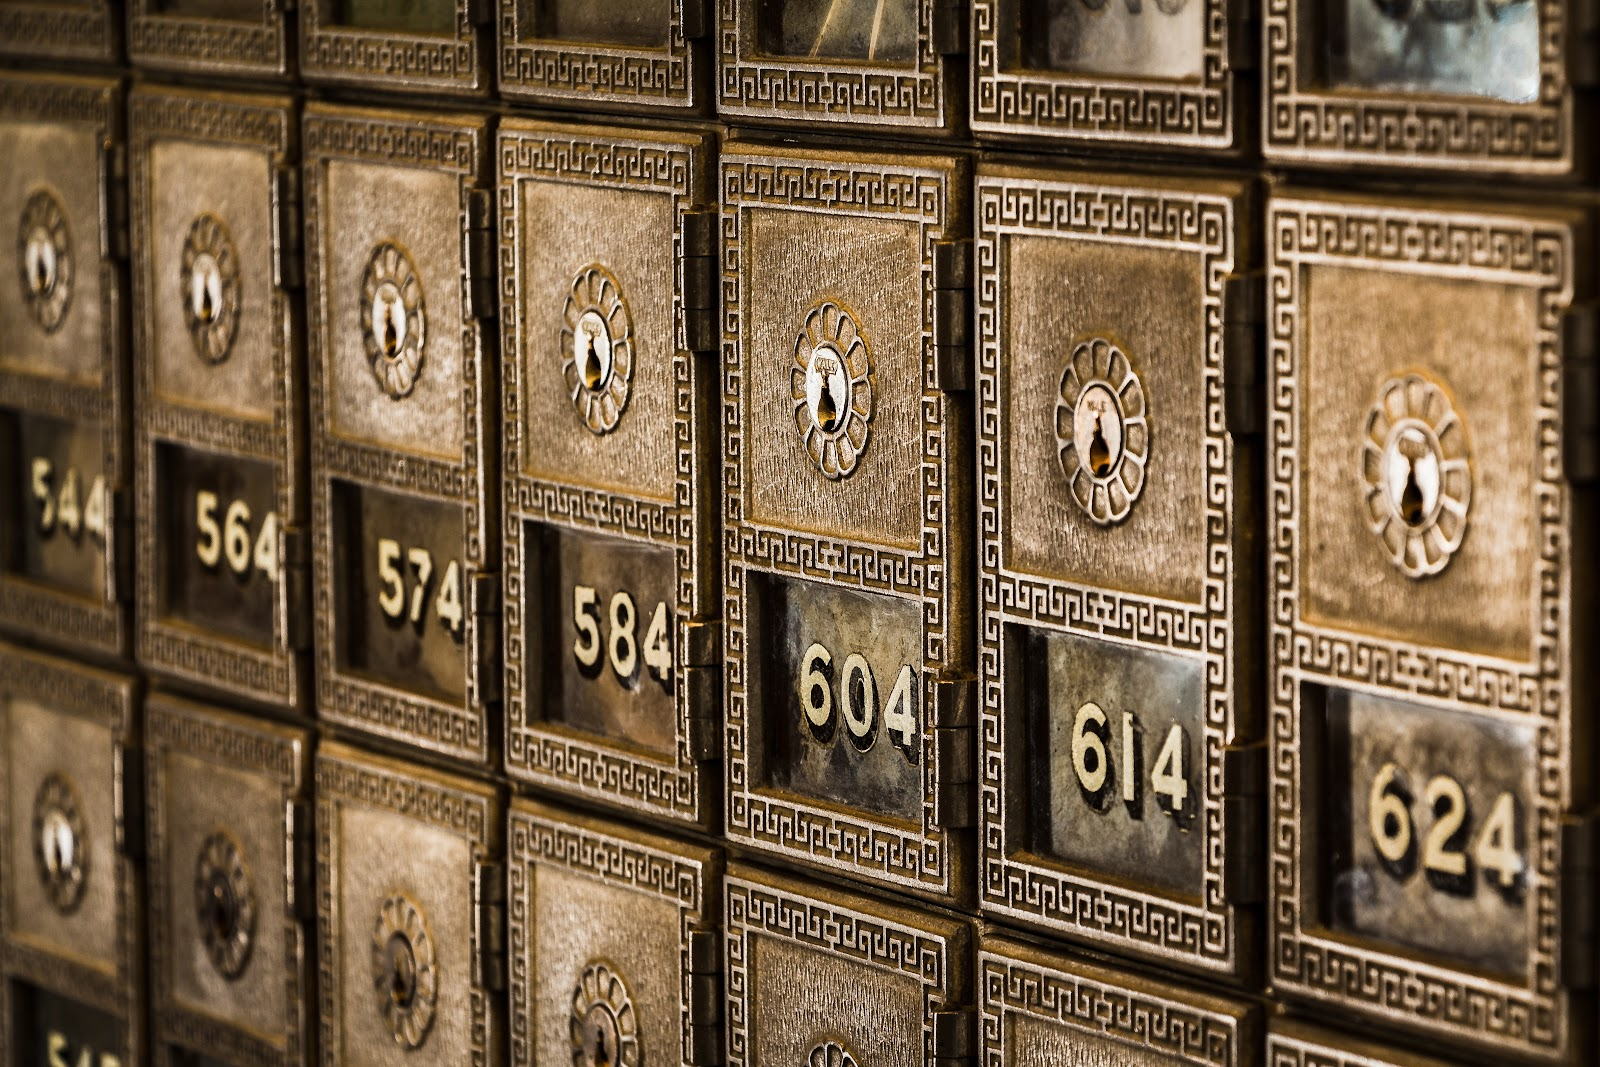 Home safes and bank deposit boxes keep more than just dirt and dust out